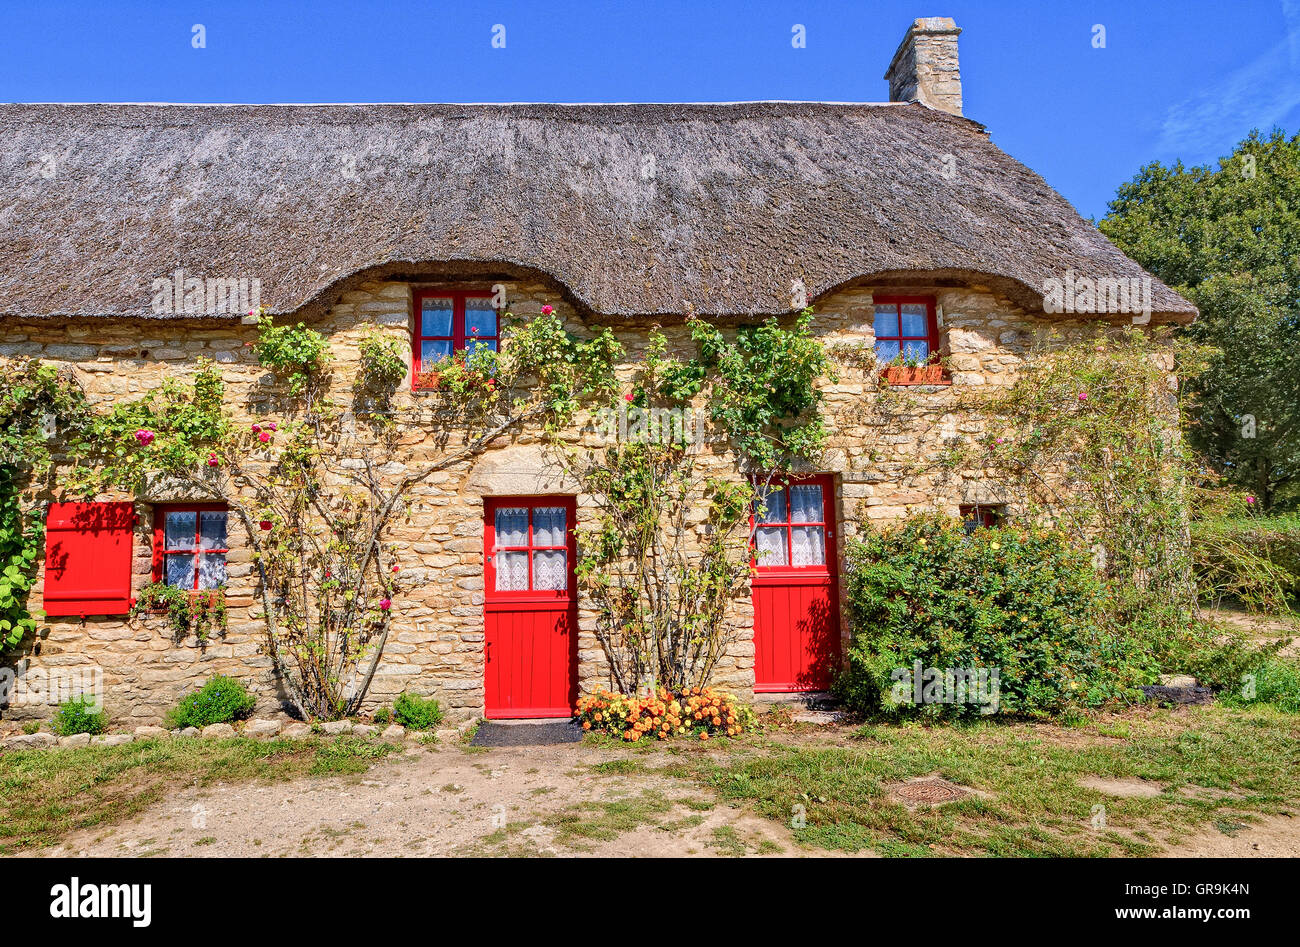 Old Farmhouse With Red Doors, Brittany, France - Stock Image